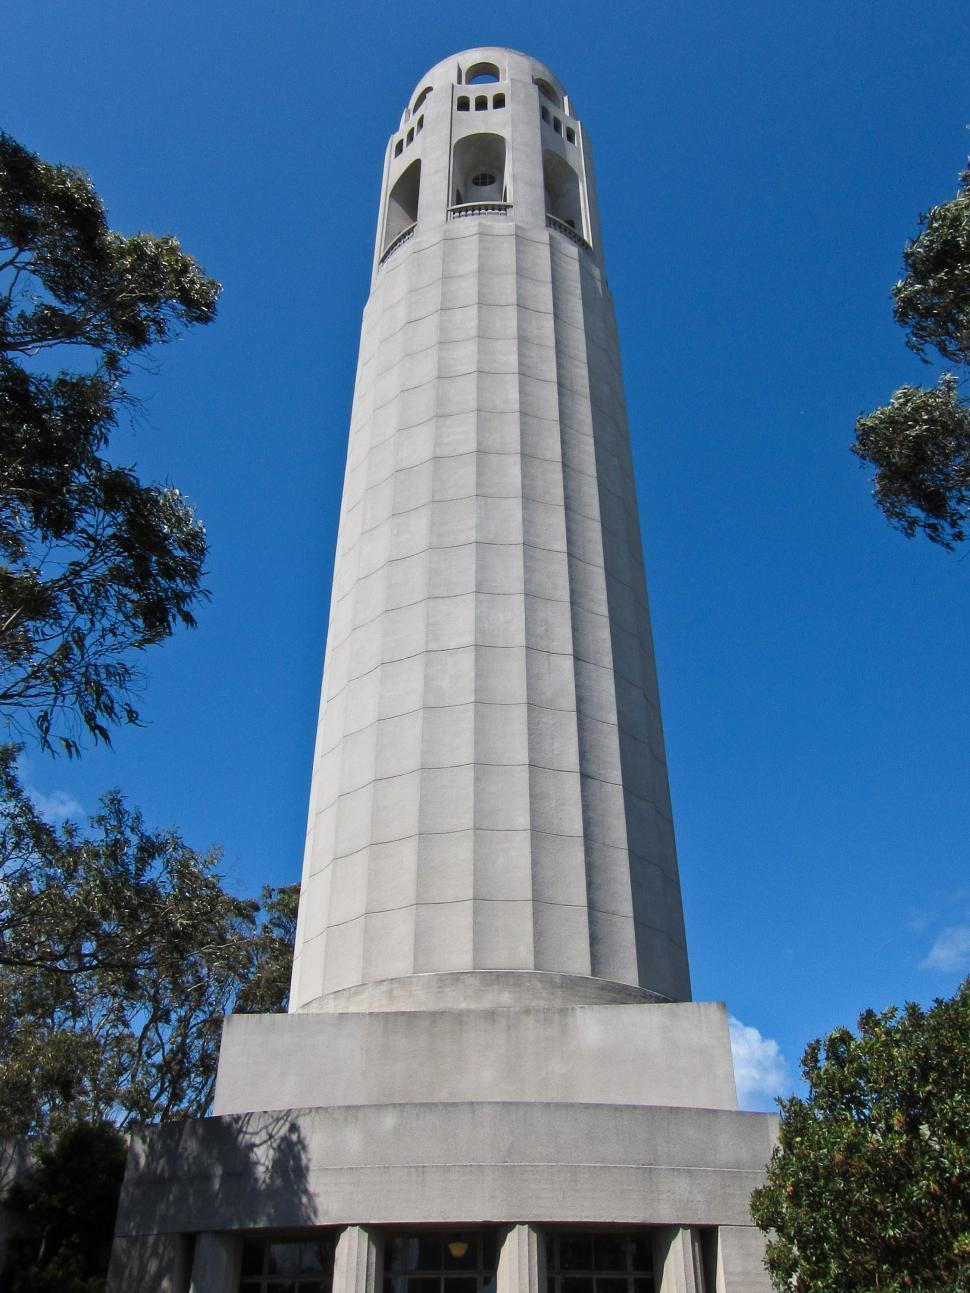 Download Free Stock HD Photo of Coit Tower, San Francisco Online